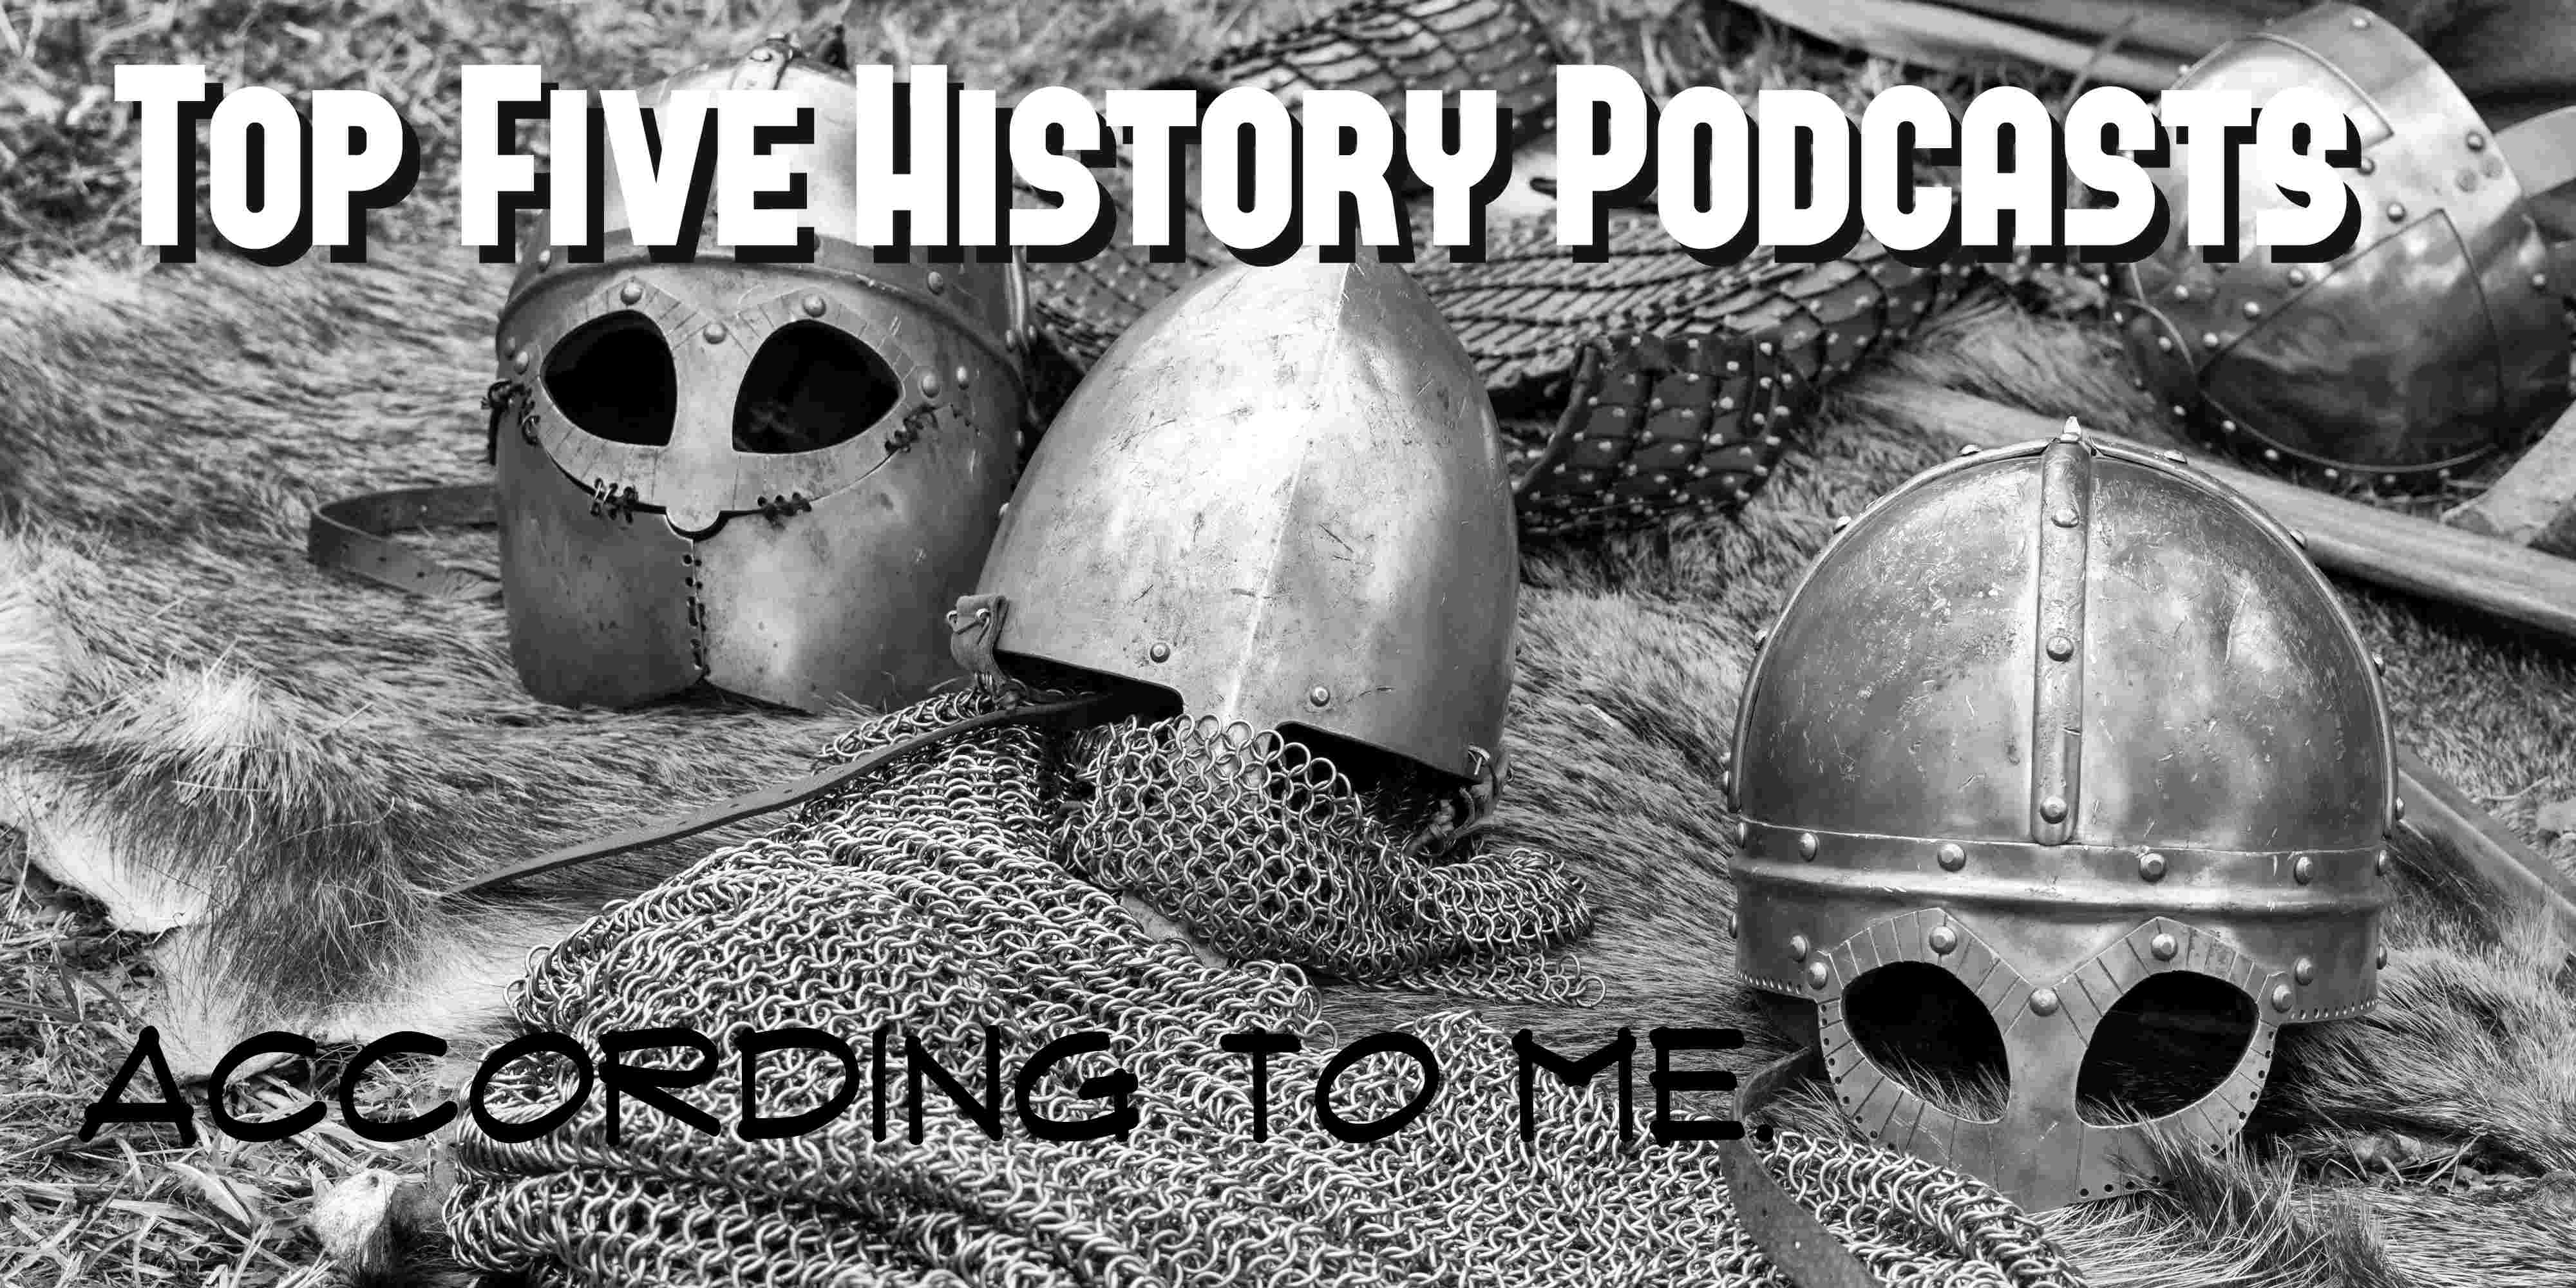 Promo History Podcast Top 5